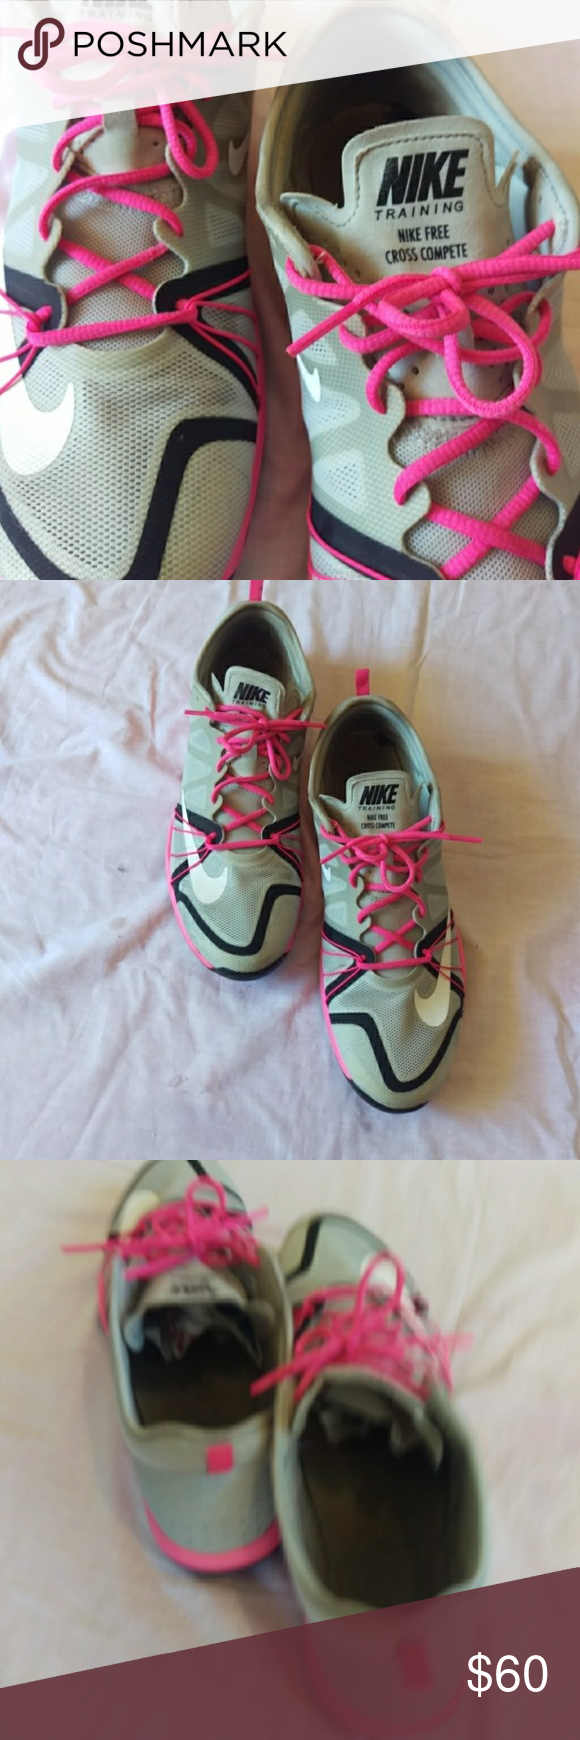 Nike free cross complete gry,wht,pnk black sneaker Nike free cross complete gray, white,pink black sneakers great condition size 10 Nike Shoes #nikefreeoutfit